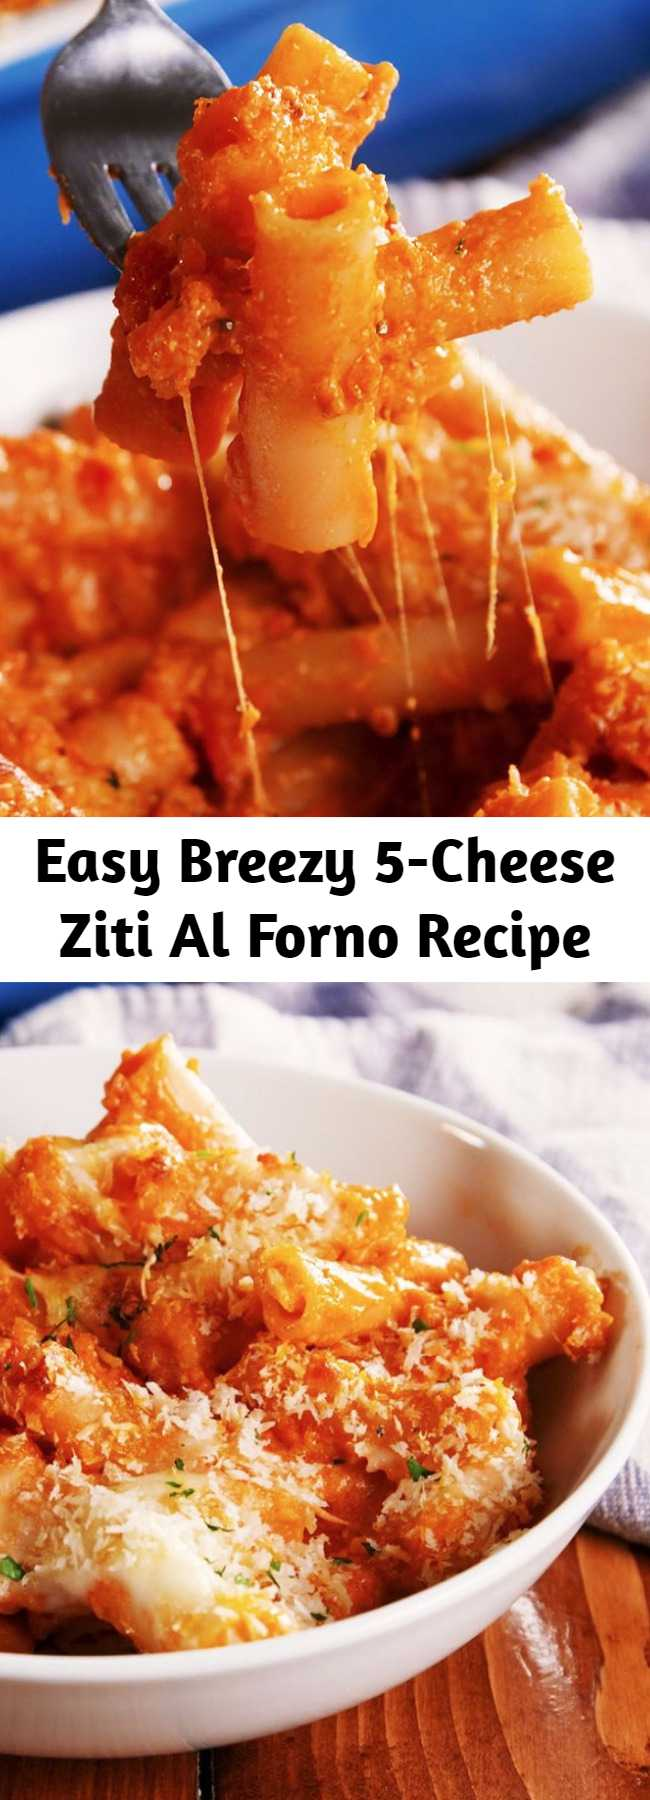 Easy Breezy 5-Cheese Ziti Al Forno Recipe - In case you missed it, copycat recipes are kind of our speciality. And this one tastes just like Olive Garden's 5-Cheese Ziti Al Forno…maybe better! Our advice: Buy a jar of marinara but make your own alfredo! #easy #recipe #pasta #cheese #fivecheese #olivegarden #copycat #ziti #baked #dinner #italian #comfortfood #redsauce #pastasauce